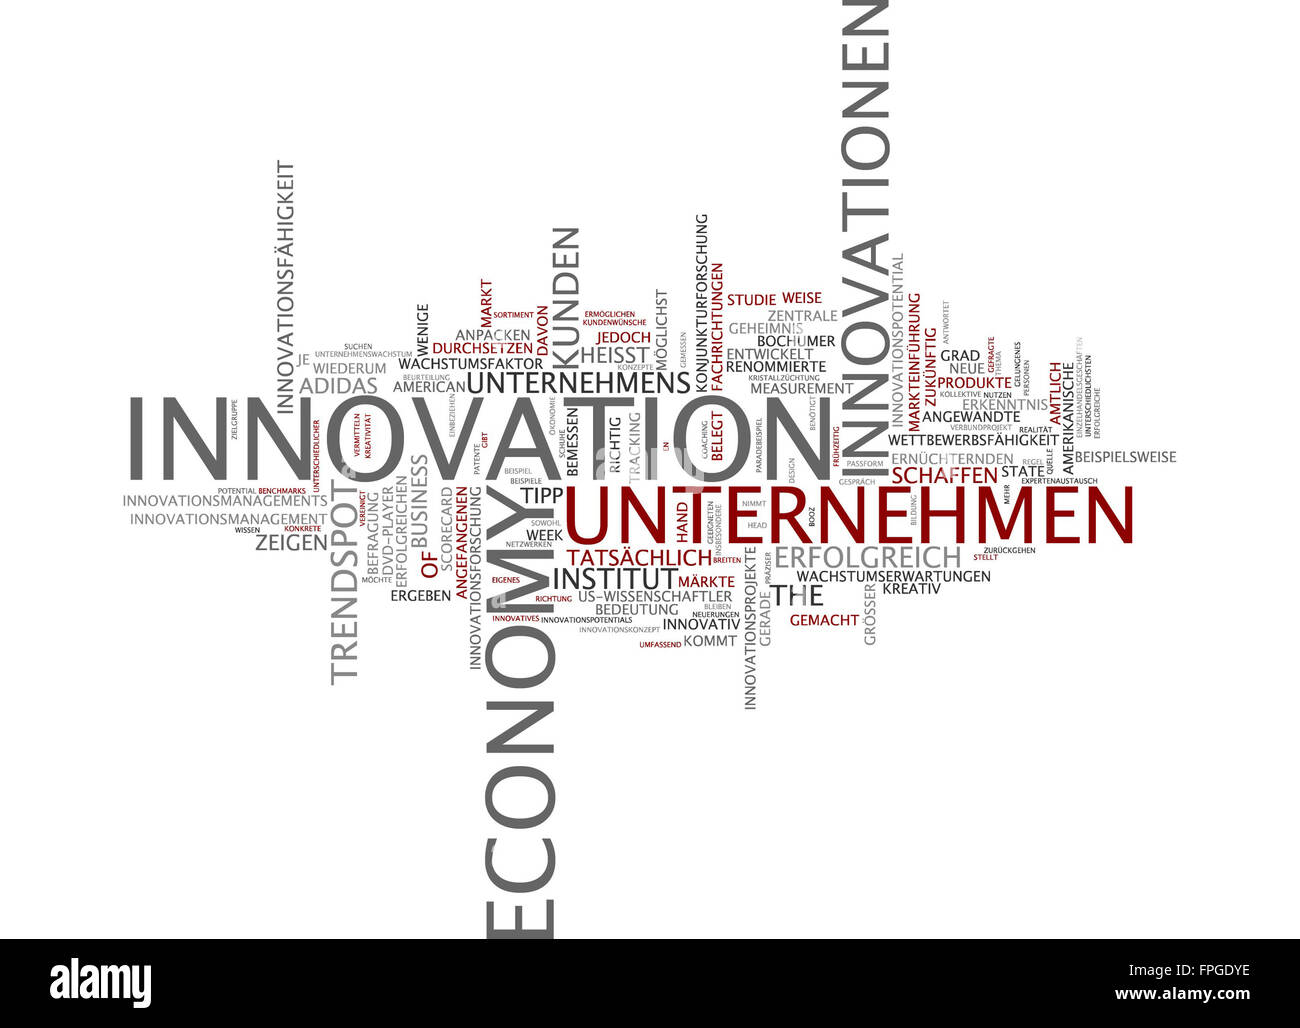 innovation economy innovationen unternehmen Stock Photo